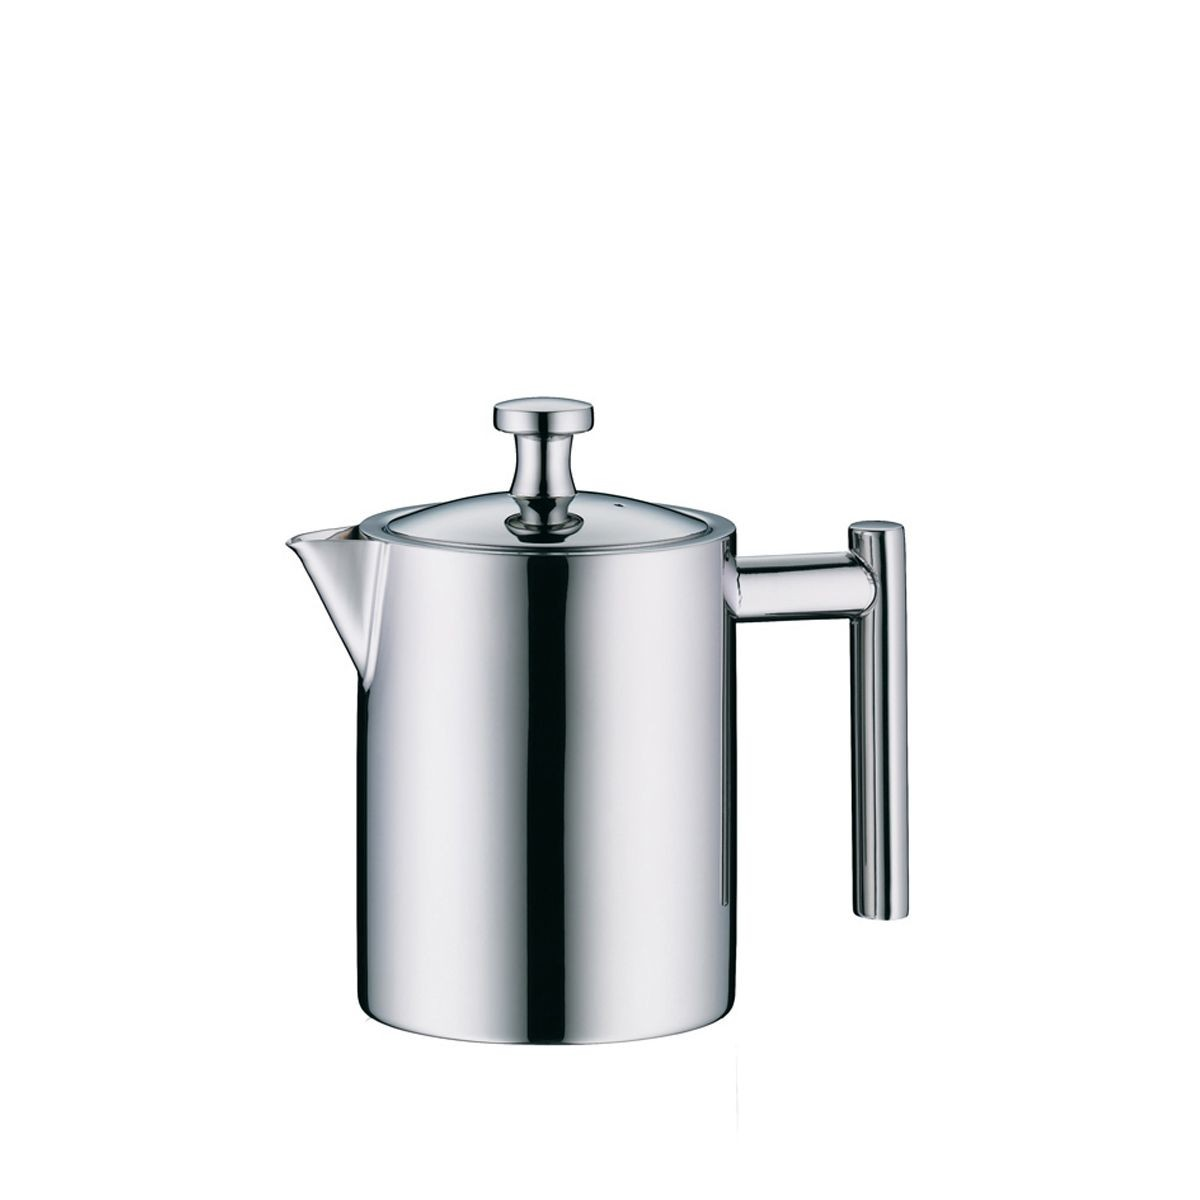 Service Ideas 2109000060 Alfi Teekanne Teapot with Filter, 0.6 Liter